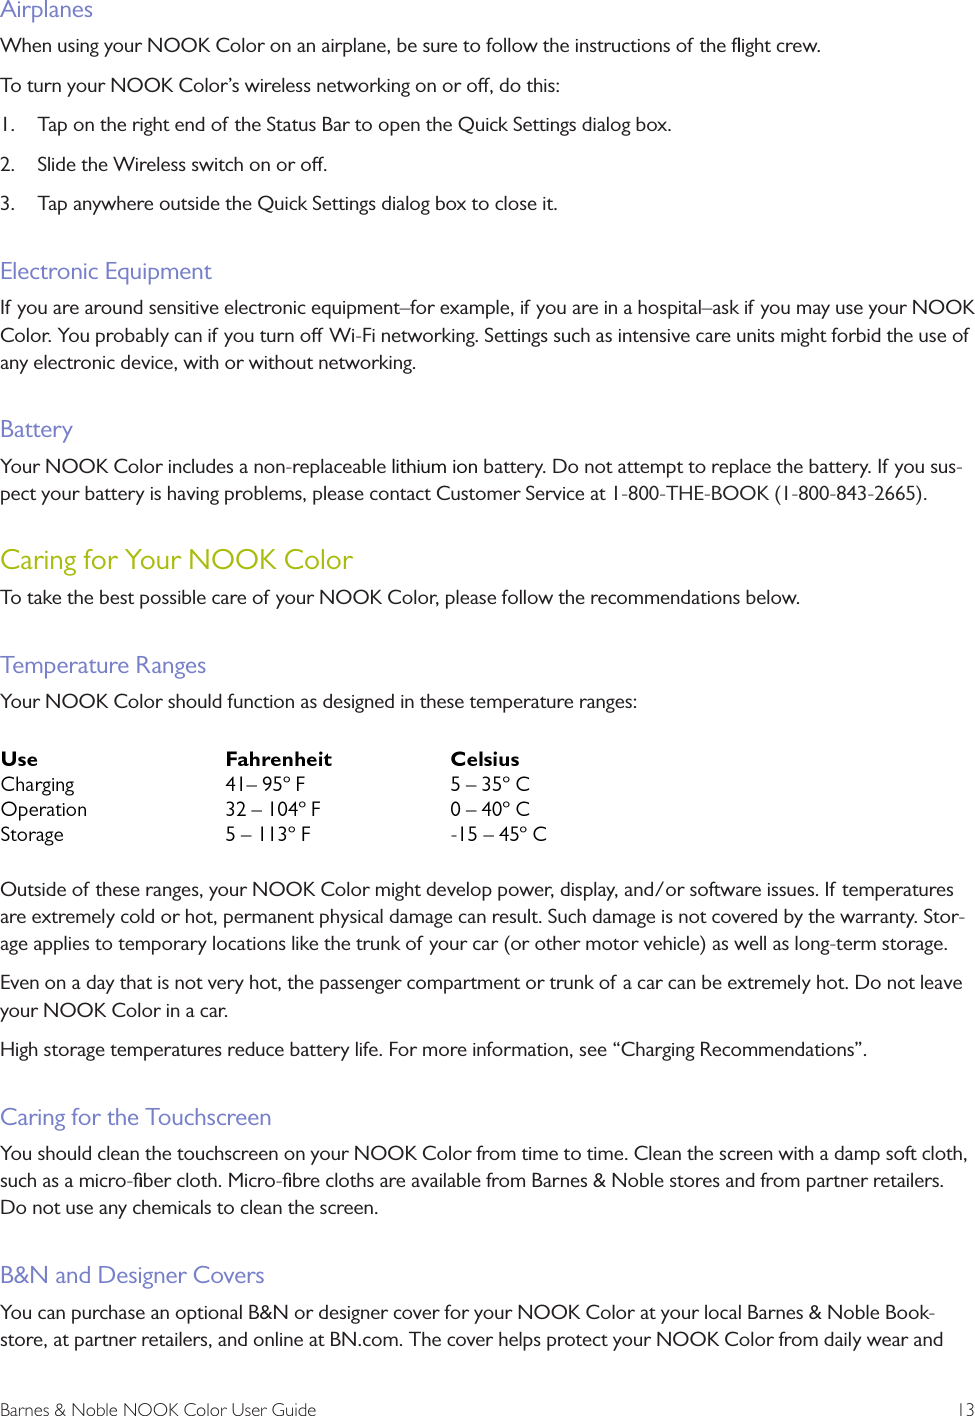 """Barnes & Noble NOOK Color User Guide  13AirplanesWhen using your NOOK Color on an airplane, be sure to follow the instructions of the flight crew. To turn your NOOK Color's wireless networking on or o, do this:1.  Tap on the right end of the Status Bar to open the Quick Settings dialog box.2.  Slide the Wireless switch on or o. 3.  Tap anywhere outside the Quick Settings dialog box to close it.Electronic EquipmentIf you are around sensitive electronic equipment–for example, if  you are in a hospital–ask if you may use your NOOK Color. You probably can if  you turn o Wi-Fi networking. Settings such as intensive care units might forbid the use of any electronic device, with or without networking.BatteryYour NOOK Color includes a non-replaceable lithium ion battery. Do not attempt to replace the battery. If you sus-pect your battery is having problems, please contact Customer Service at 1-800-THE-BOOK (1-800-843-2665).Caring for Your NOOK ColorTo take the best possible care of your NOOK Color, please follow the recommendations below.Temperature RangesYour NOOK Color should function as designed in these temperature ranges:Outside of these ranges, your NOOK Color might develop power, display, and/or software issues. If temperatures are extremely cold or hot, permanent physical damage can result. Such damage is not covered by the warranty. Stor-age applies to temporary locations like the trunk of your car (or other motor vehicle) as well as long-term storage.Even on a day that is not very hot, the passenger compartment or trunk of a car can be extremely hot. Do not leave your NOOK Color in a car.High storage temperatures reduce battery life. For more information, see """"Charging Recommendations"""".Caring for the TouchscreenYou should clean the touchscreen on your NOOK Color from time to time. Clean the screen with a damp soft cloth, such as a micro-fiber cloth. Micro-fibre cloths are available from Barnes & Noble stores and from partner retailers. Do not use any chemicals to """